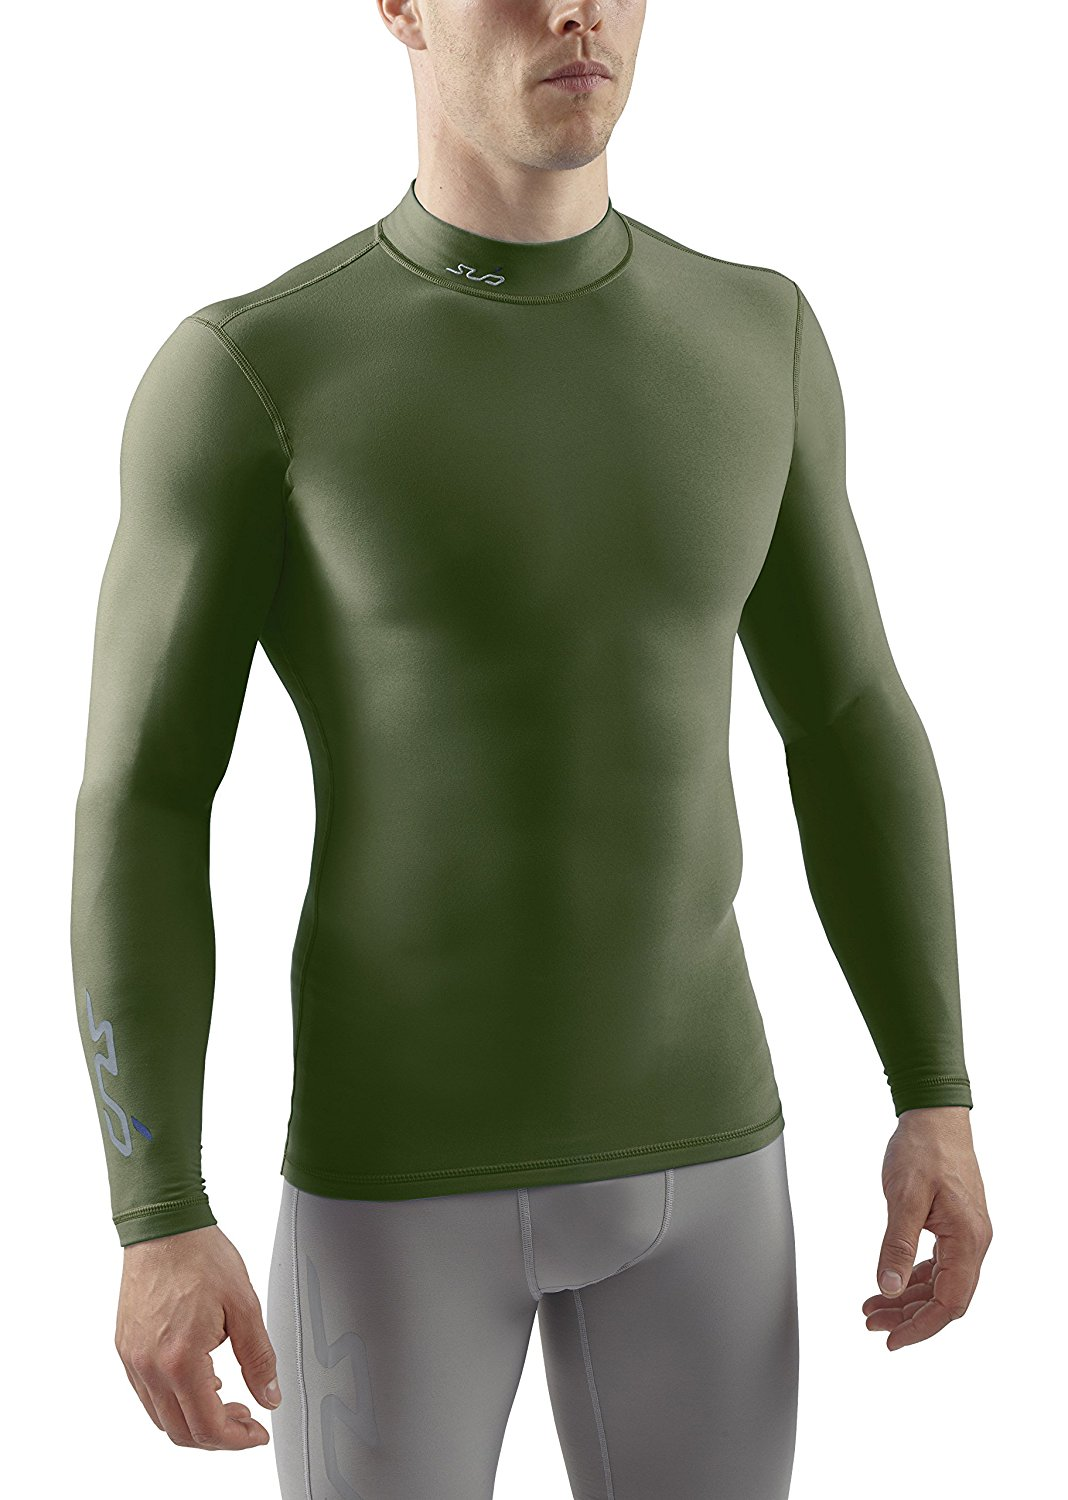 Sub Sports Mens Thermal Long Sleeve Mock Turtleneck Neck Vest Top with a Brushed fleece inner for Warmth, Base Layer, Moisture Wicking, Compression Fit - Green - US XS (UK S)